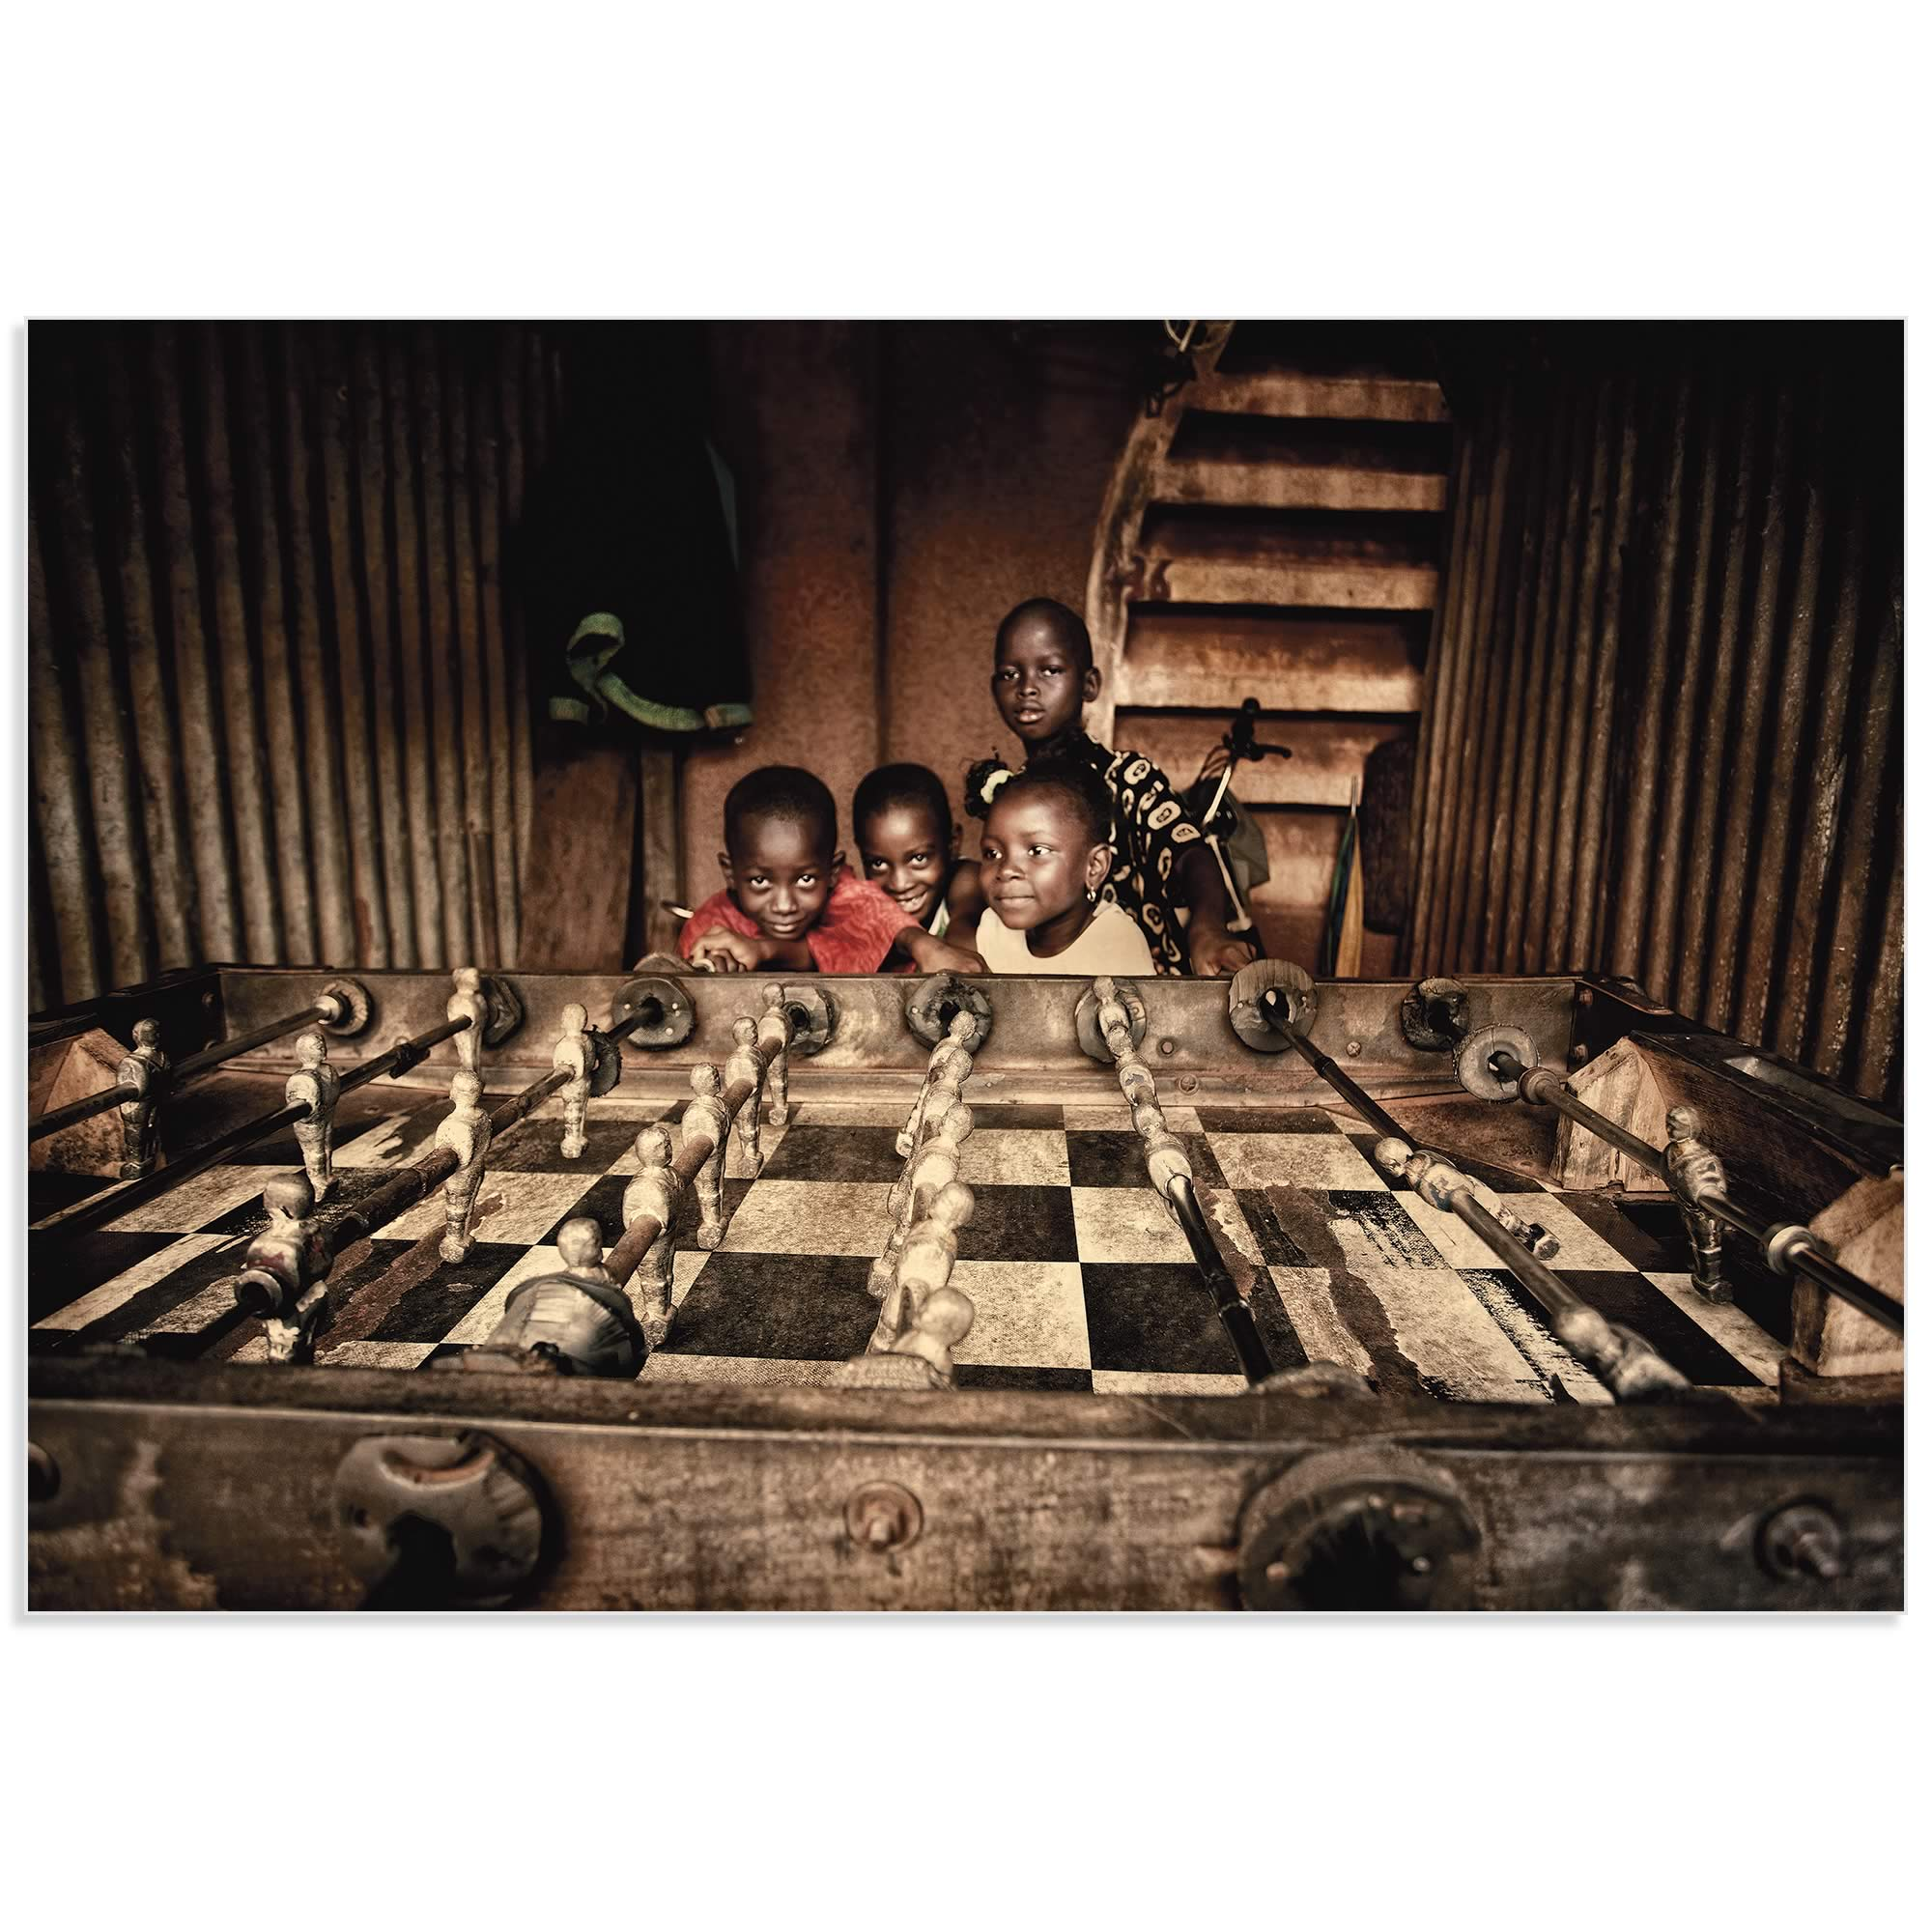 Foosballers by Manuel Vilches - African Art Photography on Metal or Acrylic - Alternate View 2